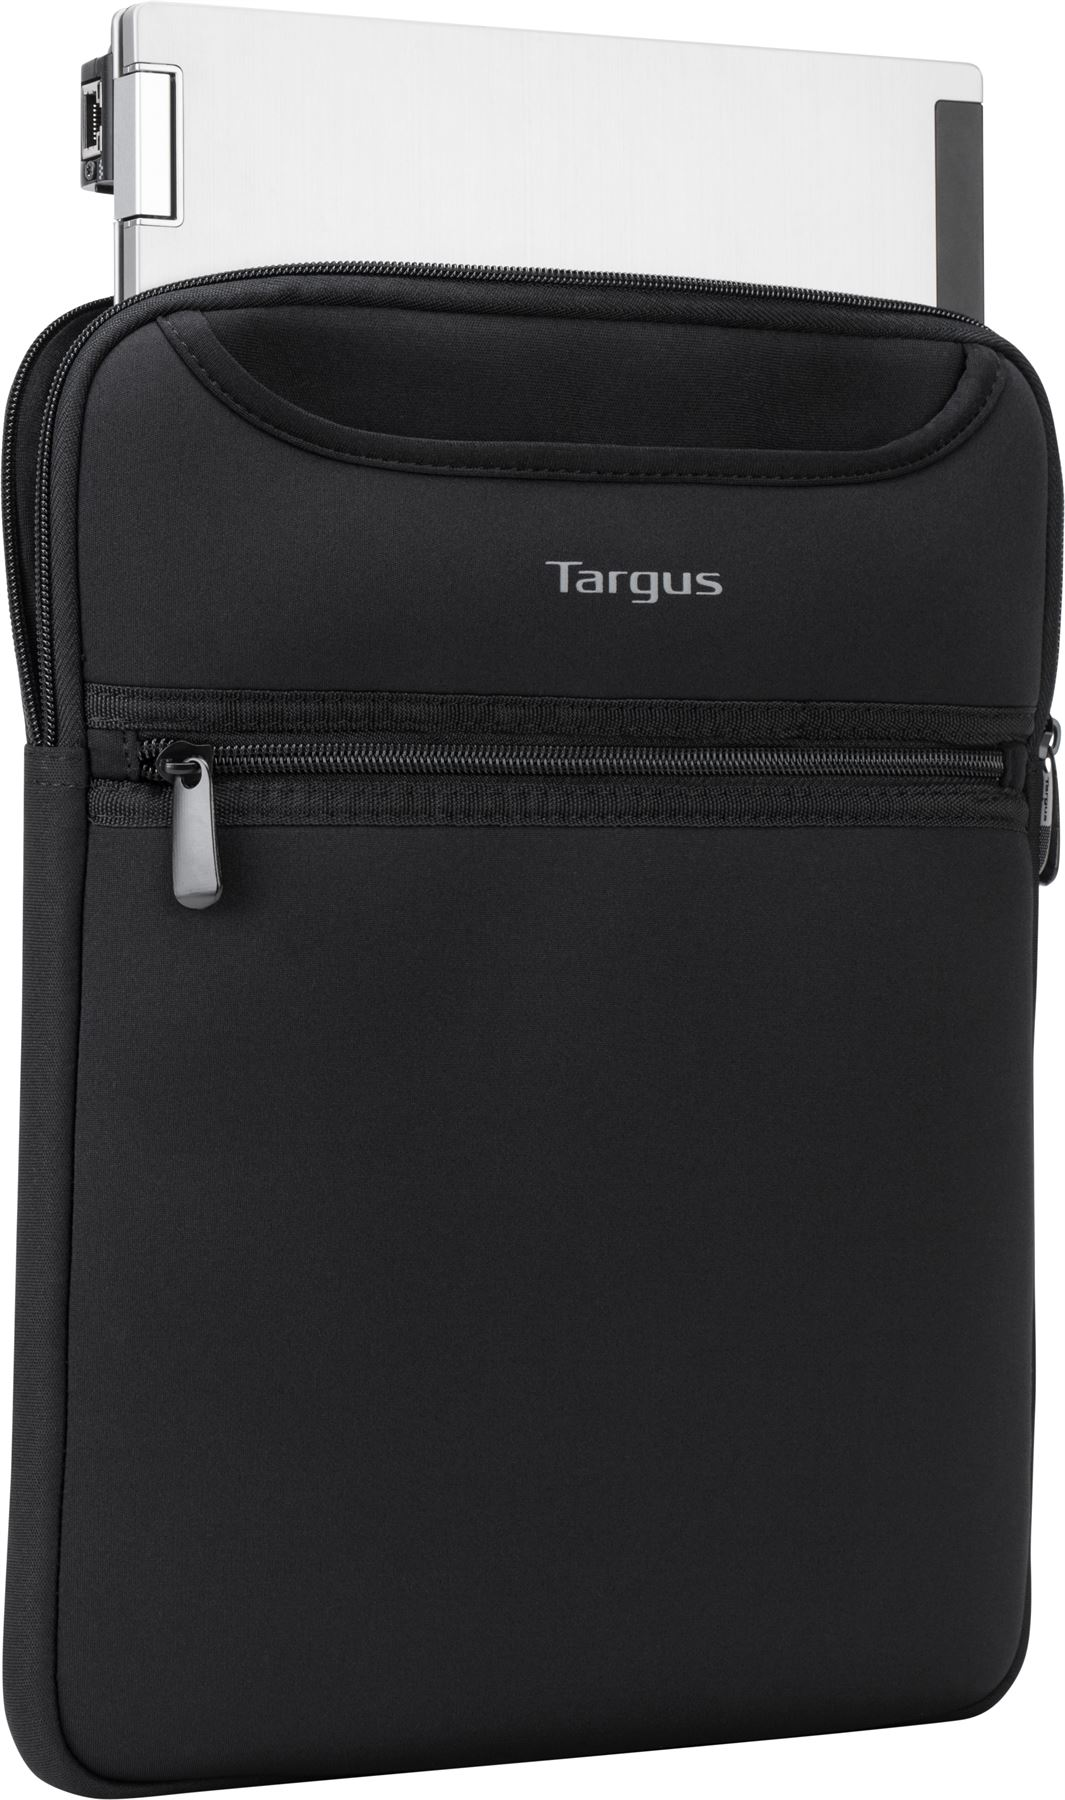 Cases Inch Laptop 19 And Bags